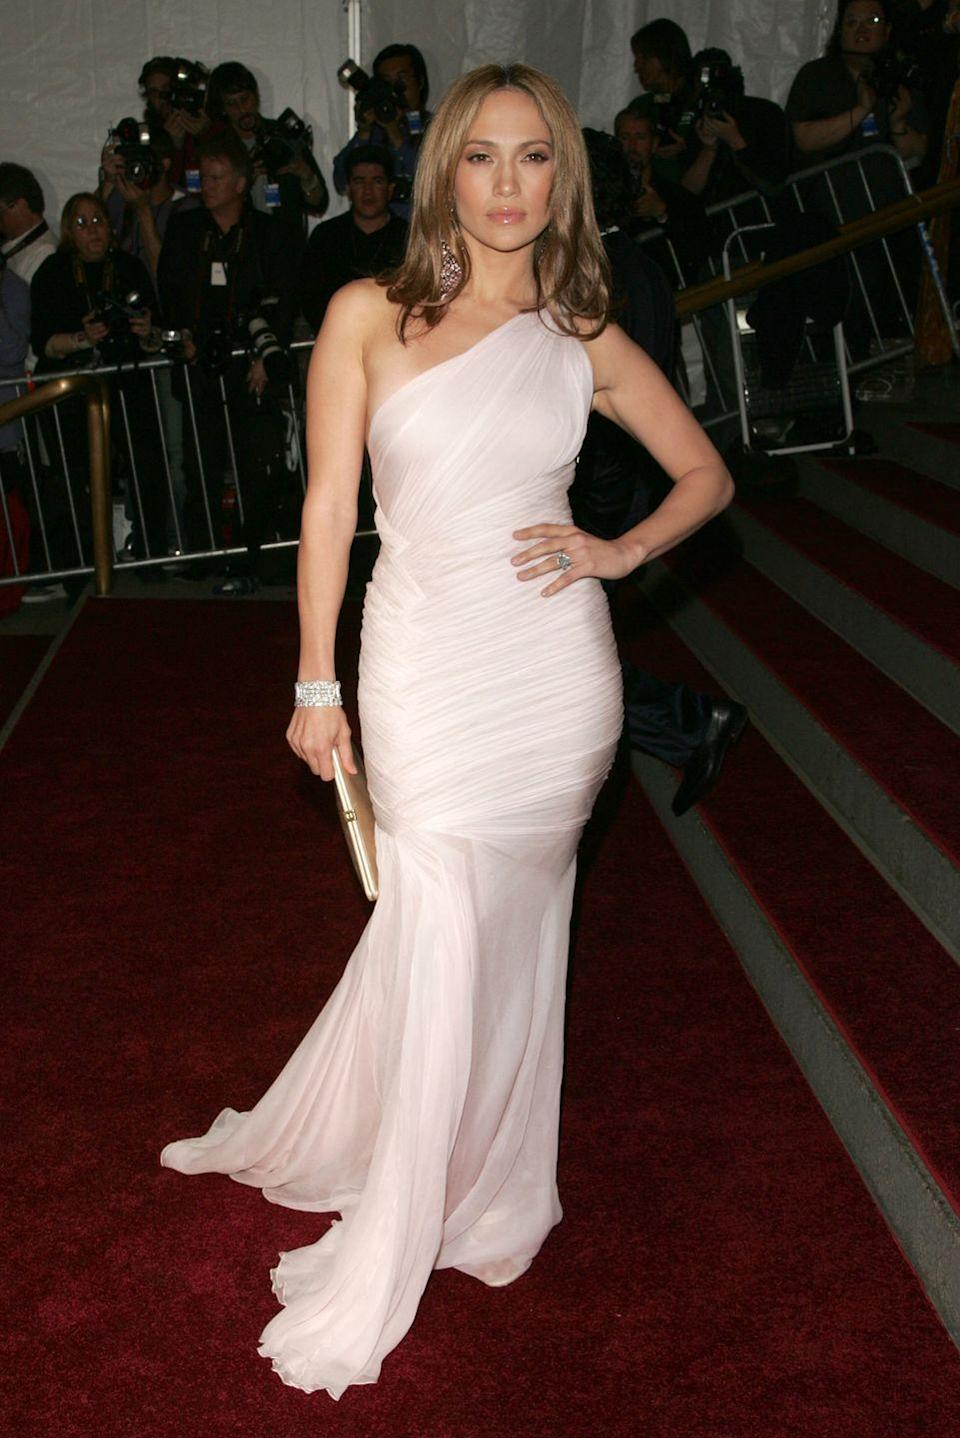 <p>She's looking angelic as ever in a pale pink one-shoulder dress at the Met Gala. It's a bit more simple than J.Lo's usual style, but damn the woman can really pull off anything.</p>